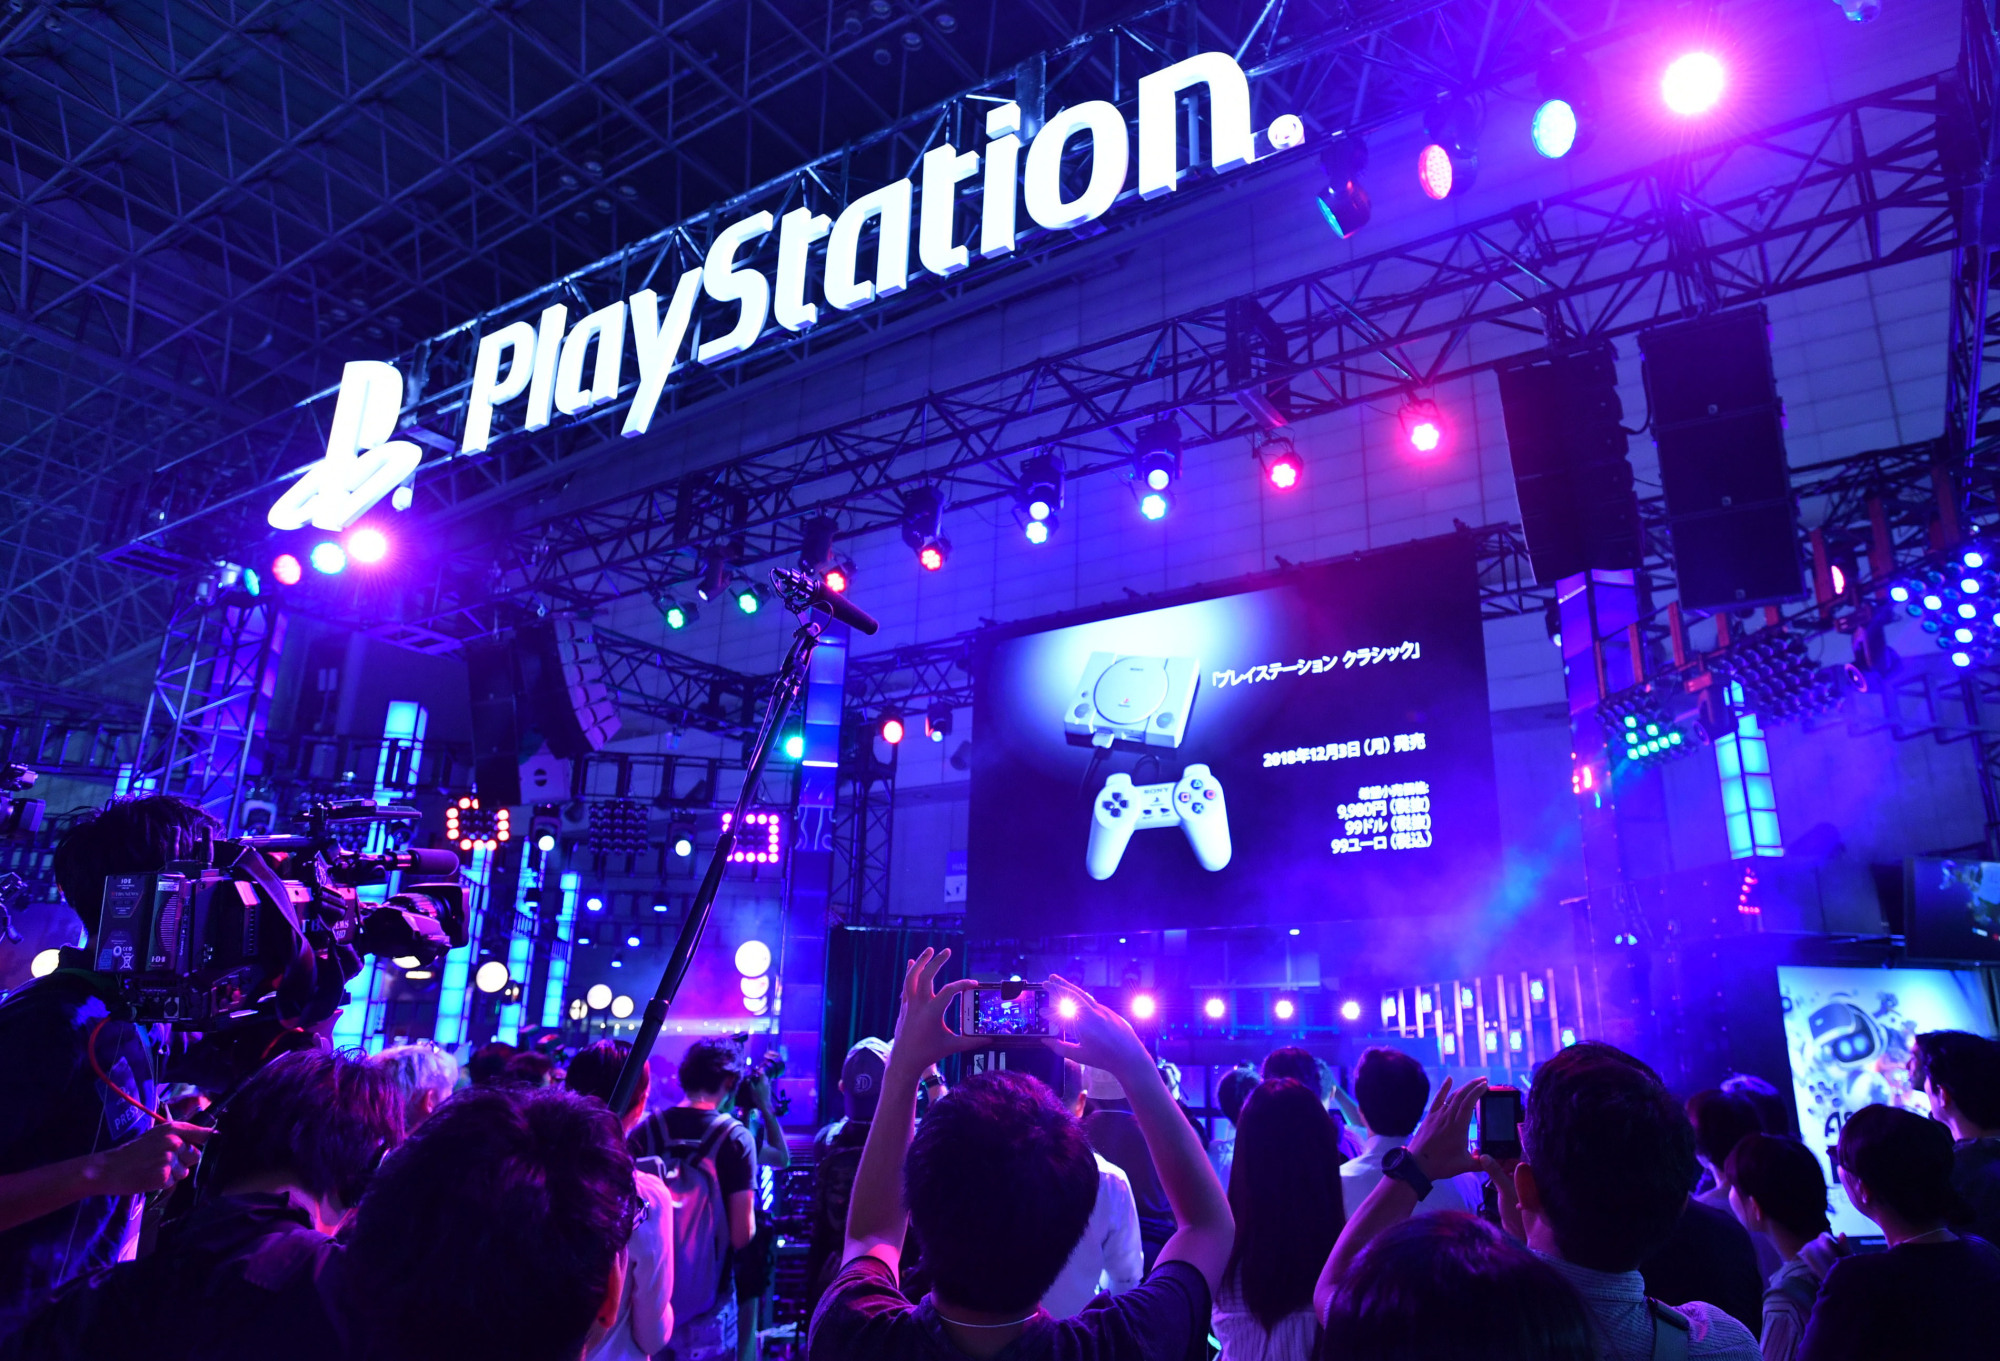 Miniature versions of Sony's original PlayStation game consoles are showcased at a booth at the Tokyo Game Show on Thursday. | YOSHIAKI MIURA